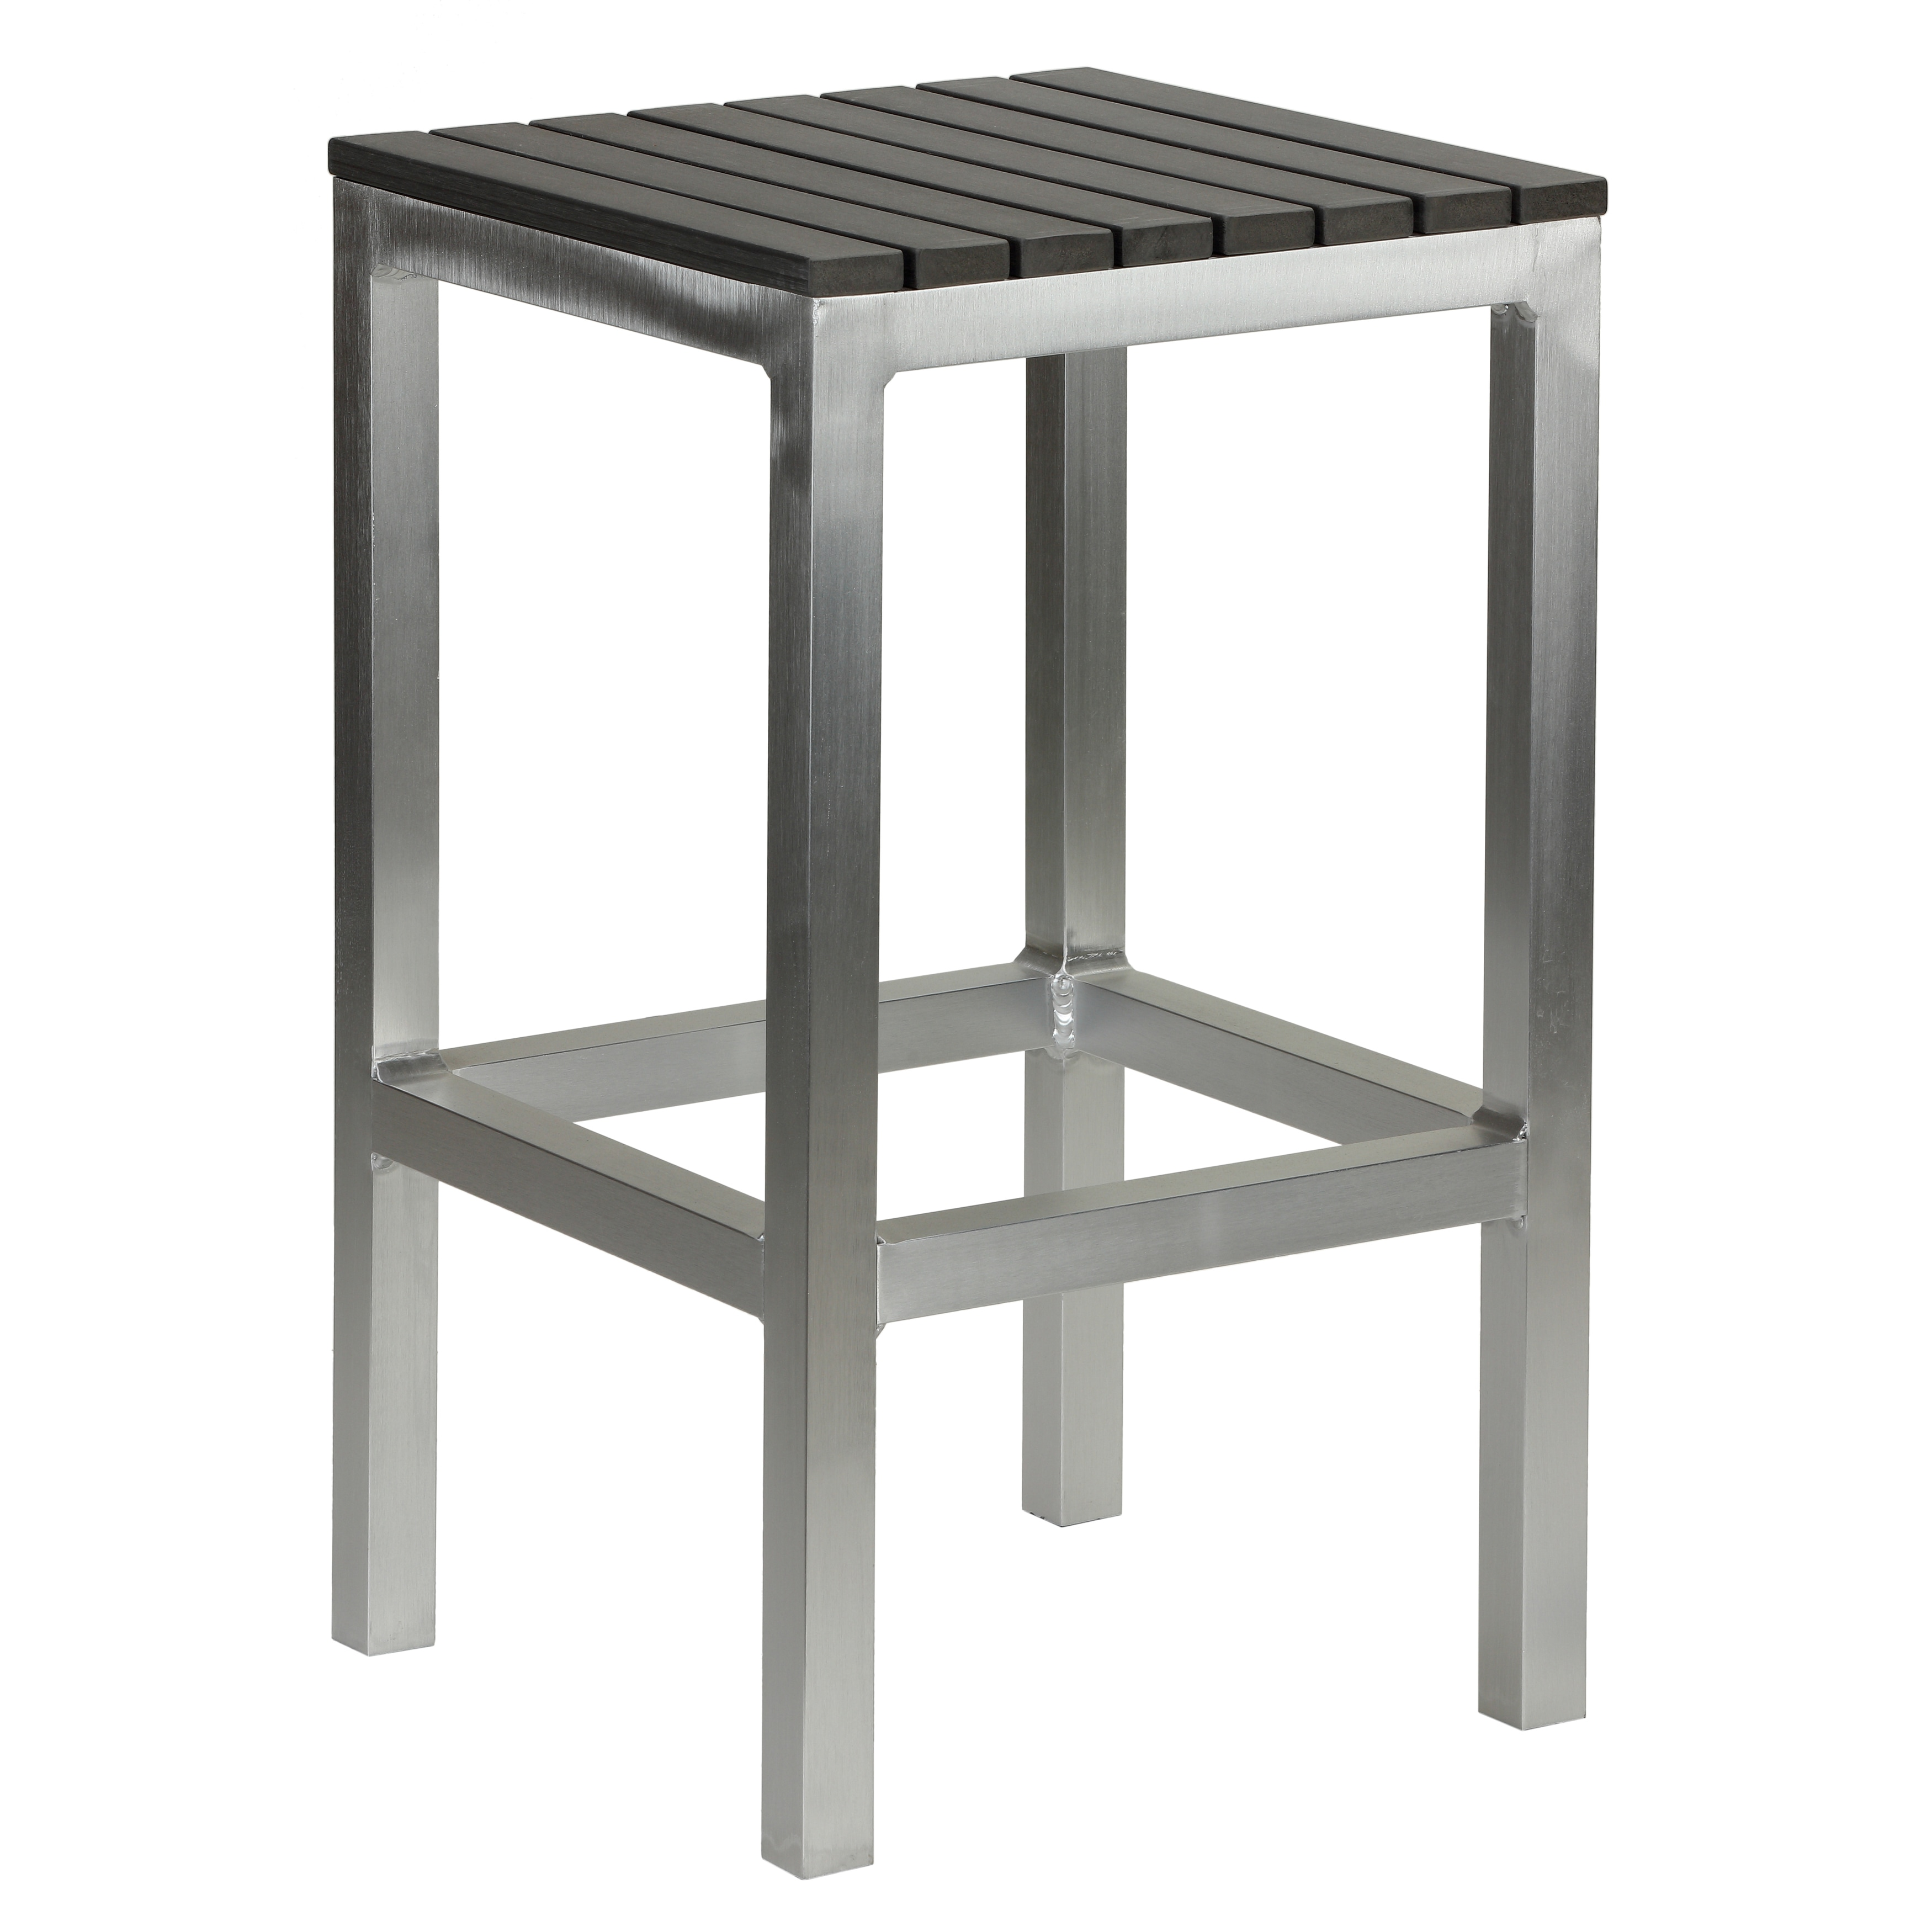 Wondrous Havenside Home Knotts Aluminum Slate Grey Poly Wood Outdoor Backless Counter Stool Andrewgaddart Wooden Chair Designs For Living Room Andrewgaddartcom